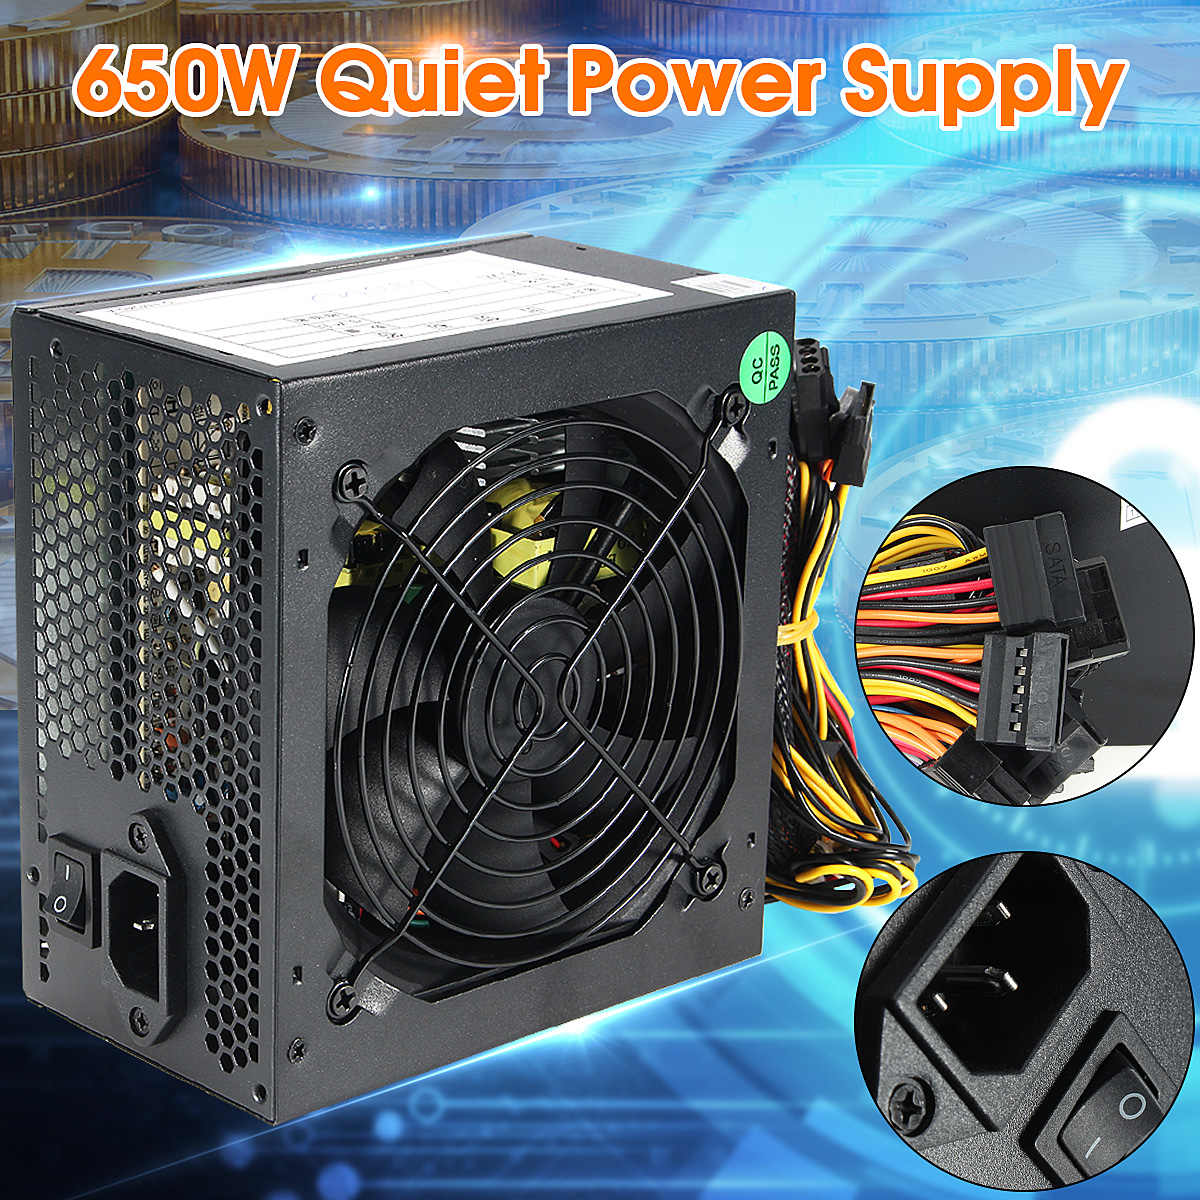 600W PC PSU Power Supply Hitam Gaming Tenang 120 Mm Fan 20/24pin 12V ATX Komputer Baru power Supply untuk BTC